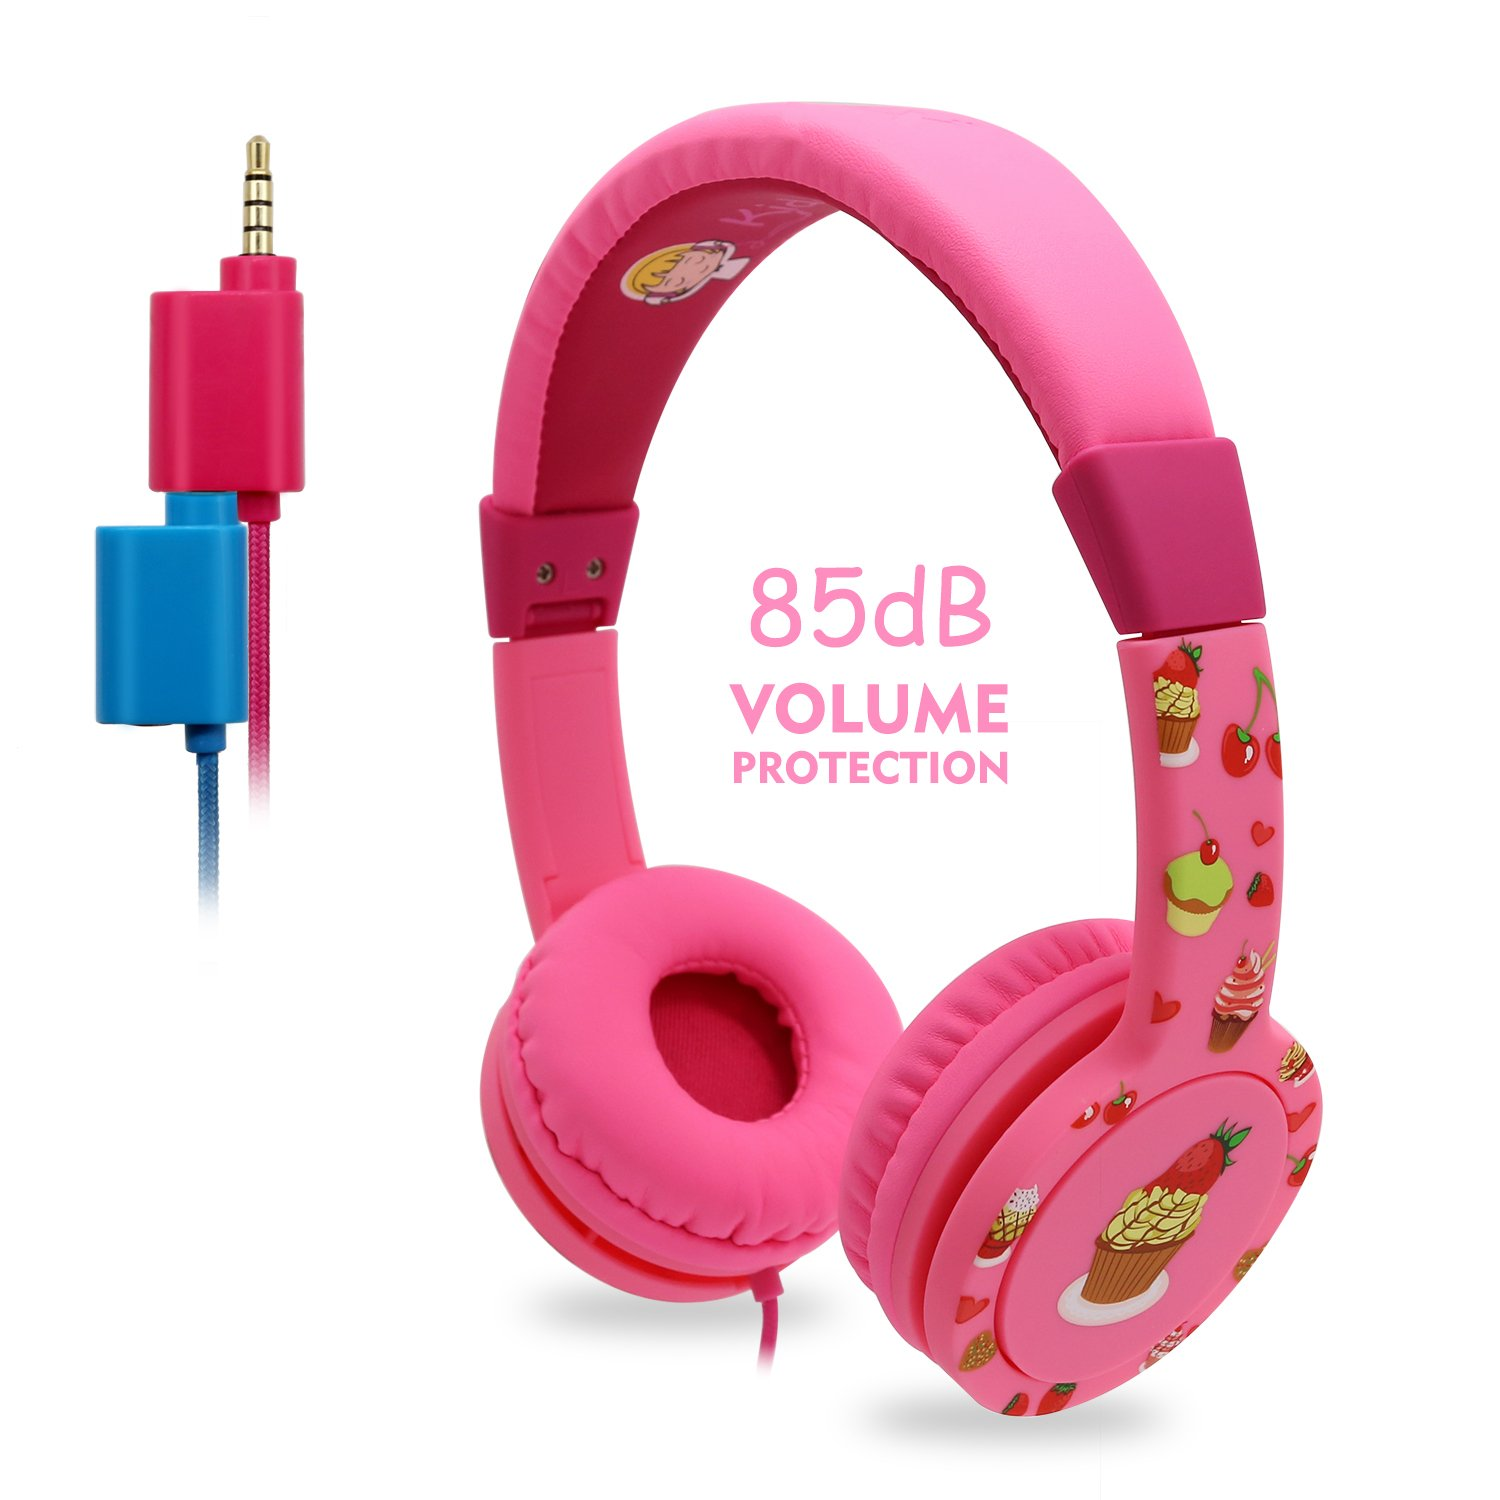 Kids Headphones, EasySMX On-Ear Headset Wired Foldable 85dB Volume Limited with Mic Headphone Splitter 3.5mm Jack In-line Control Children Headphones (Pink) by EasySMX